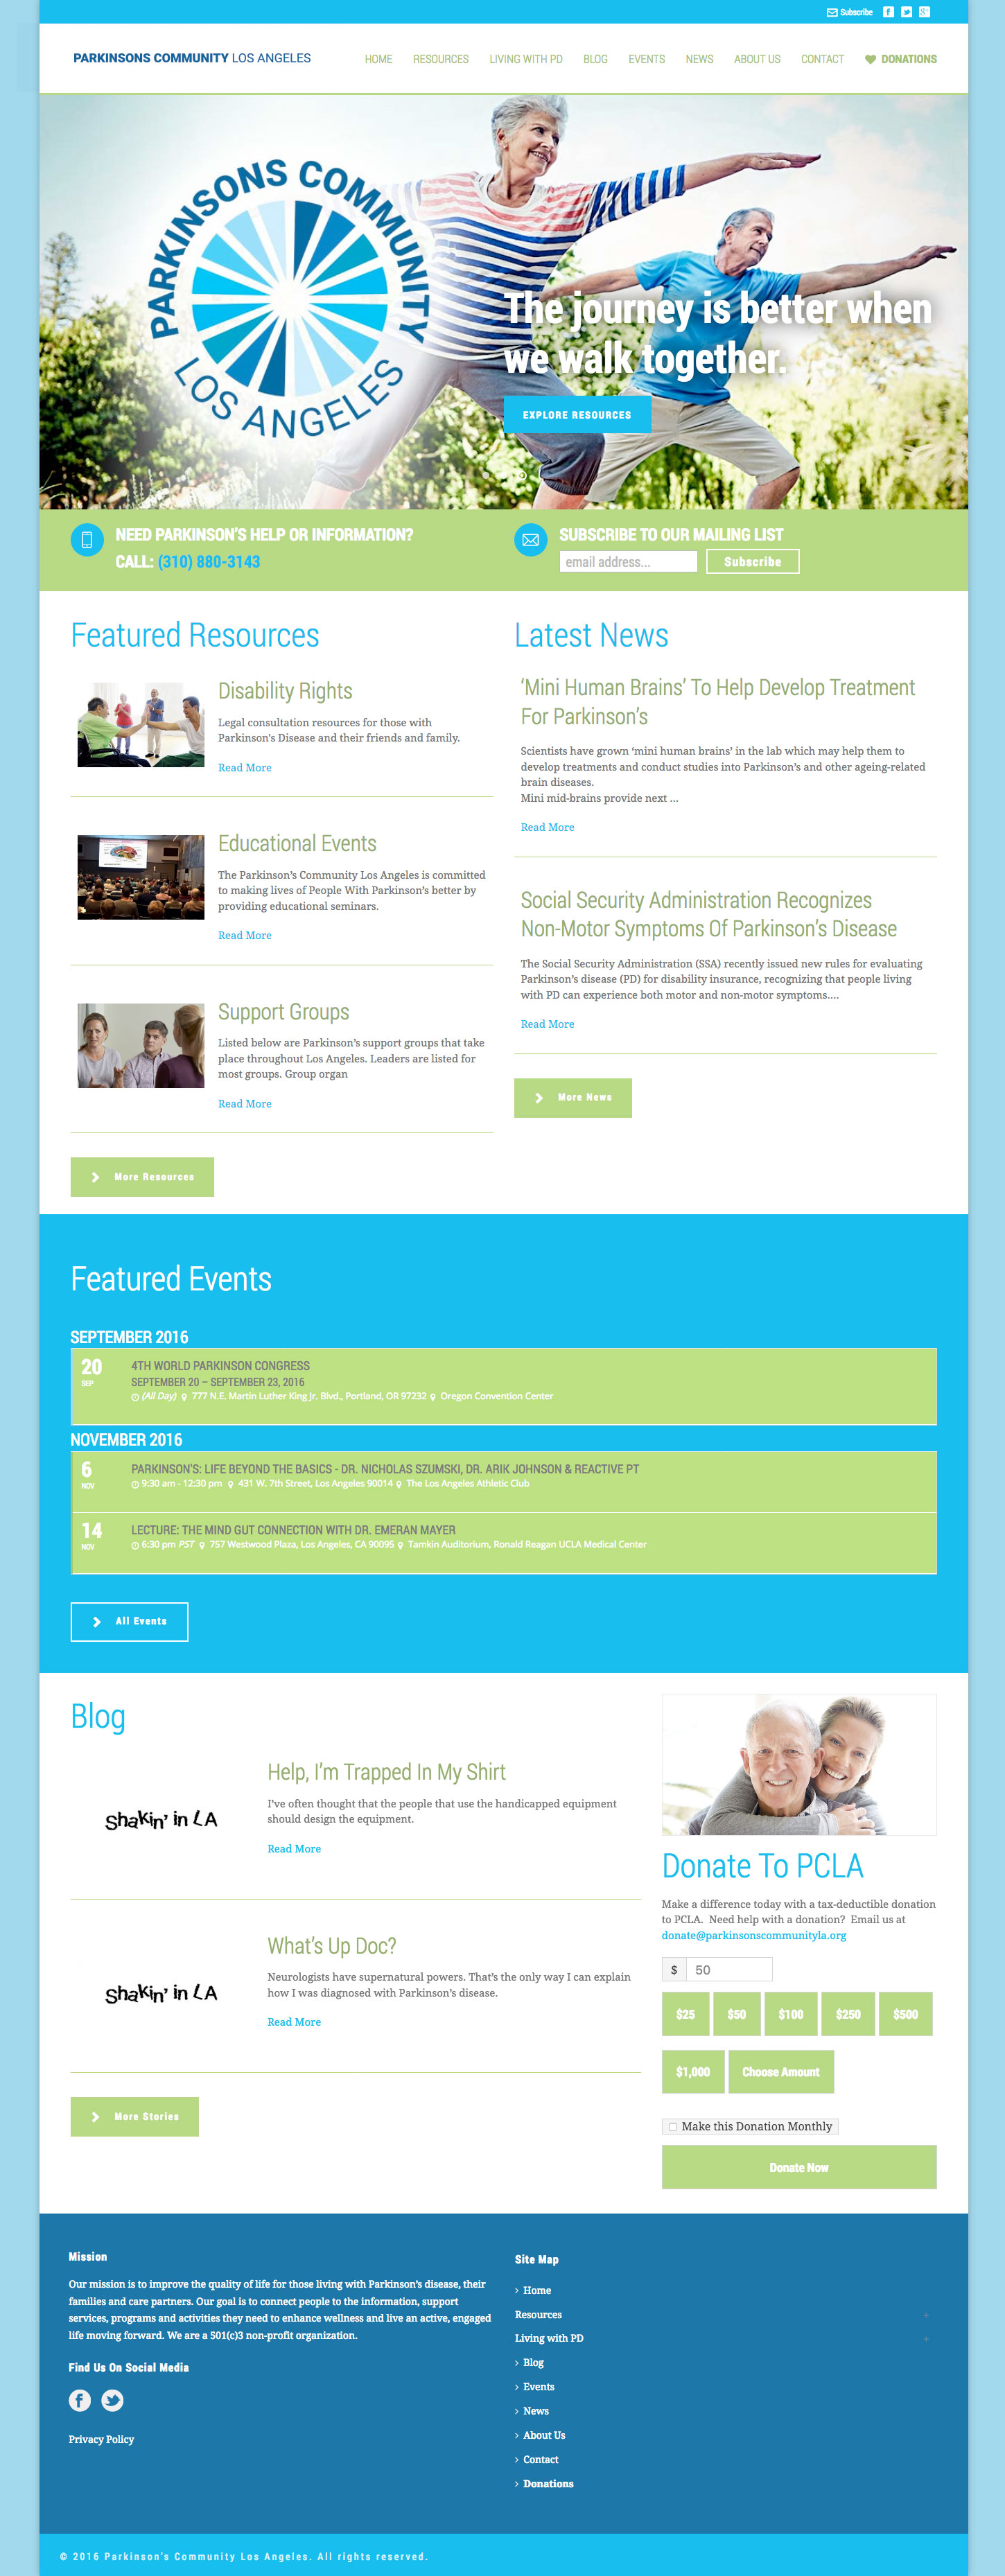 PCLA Home Page